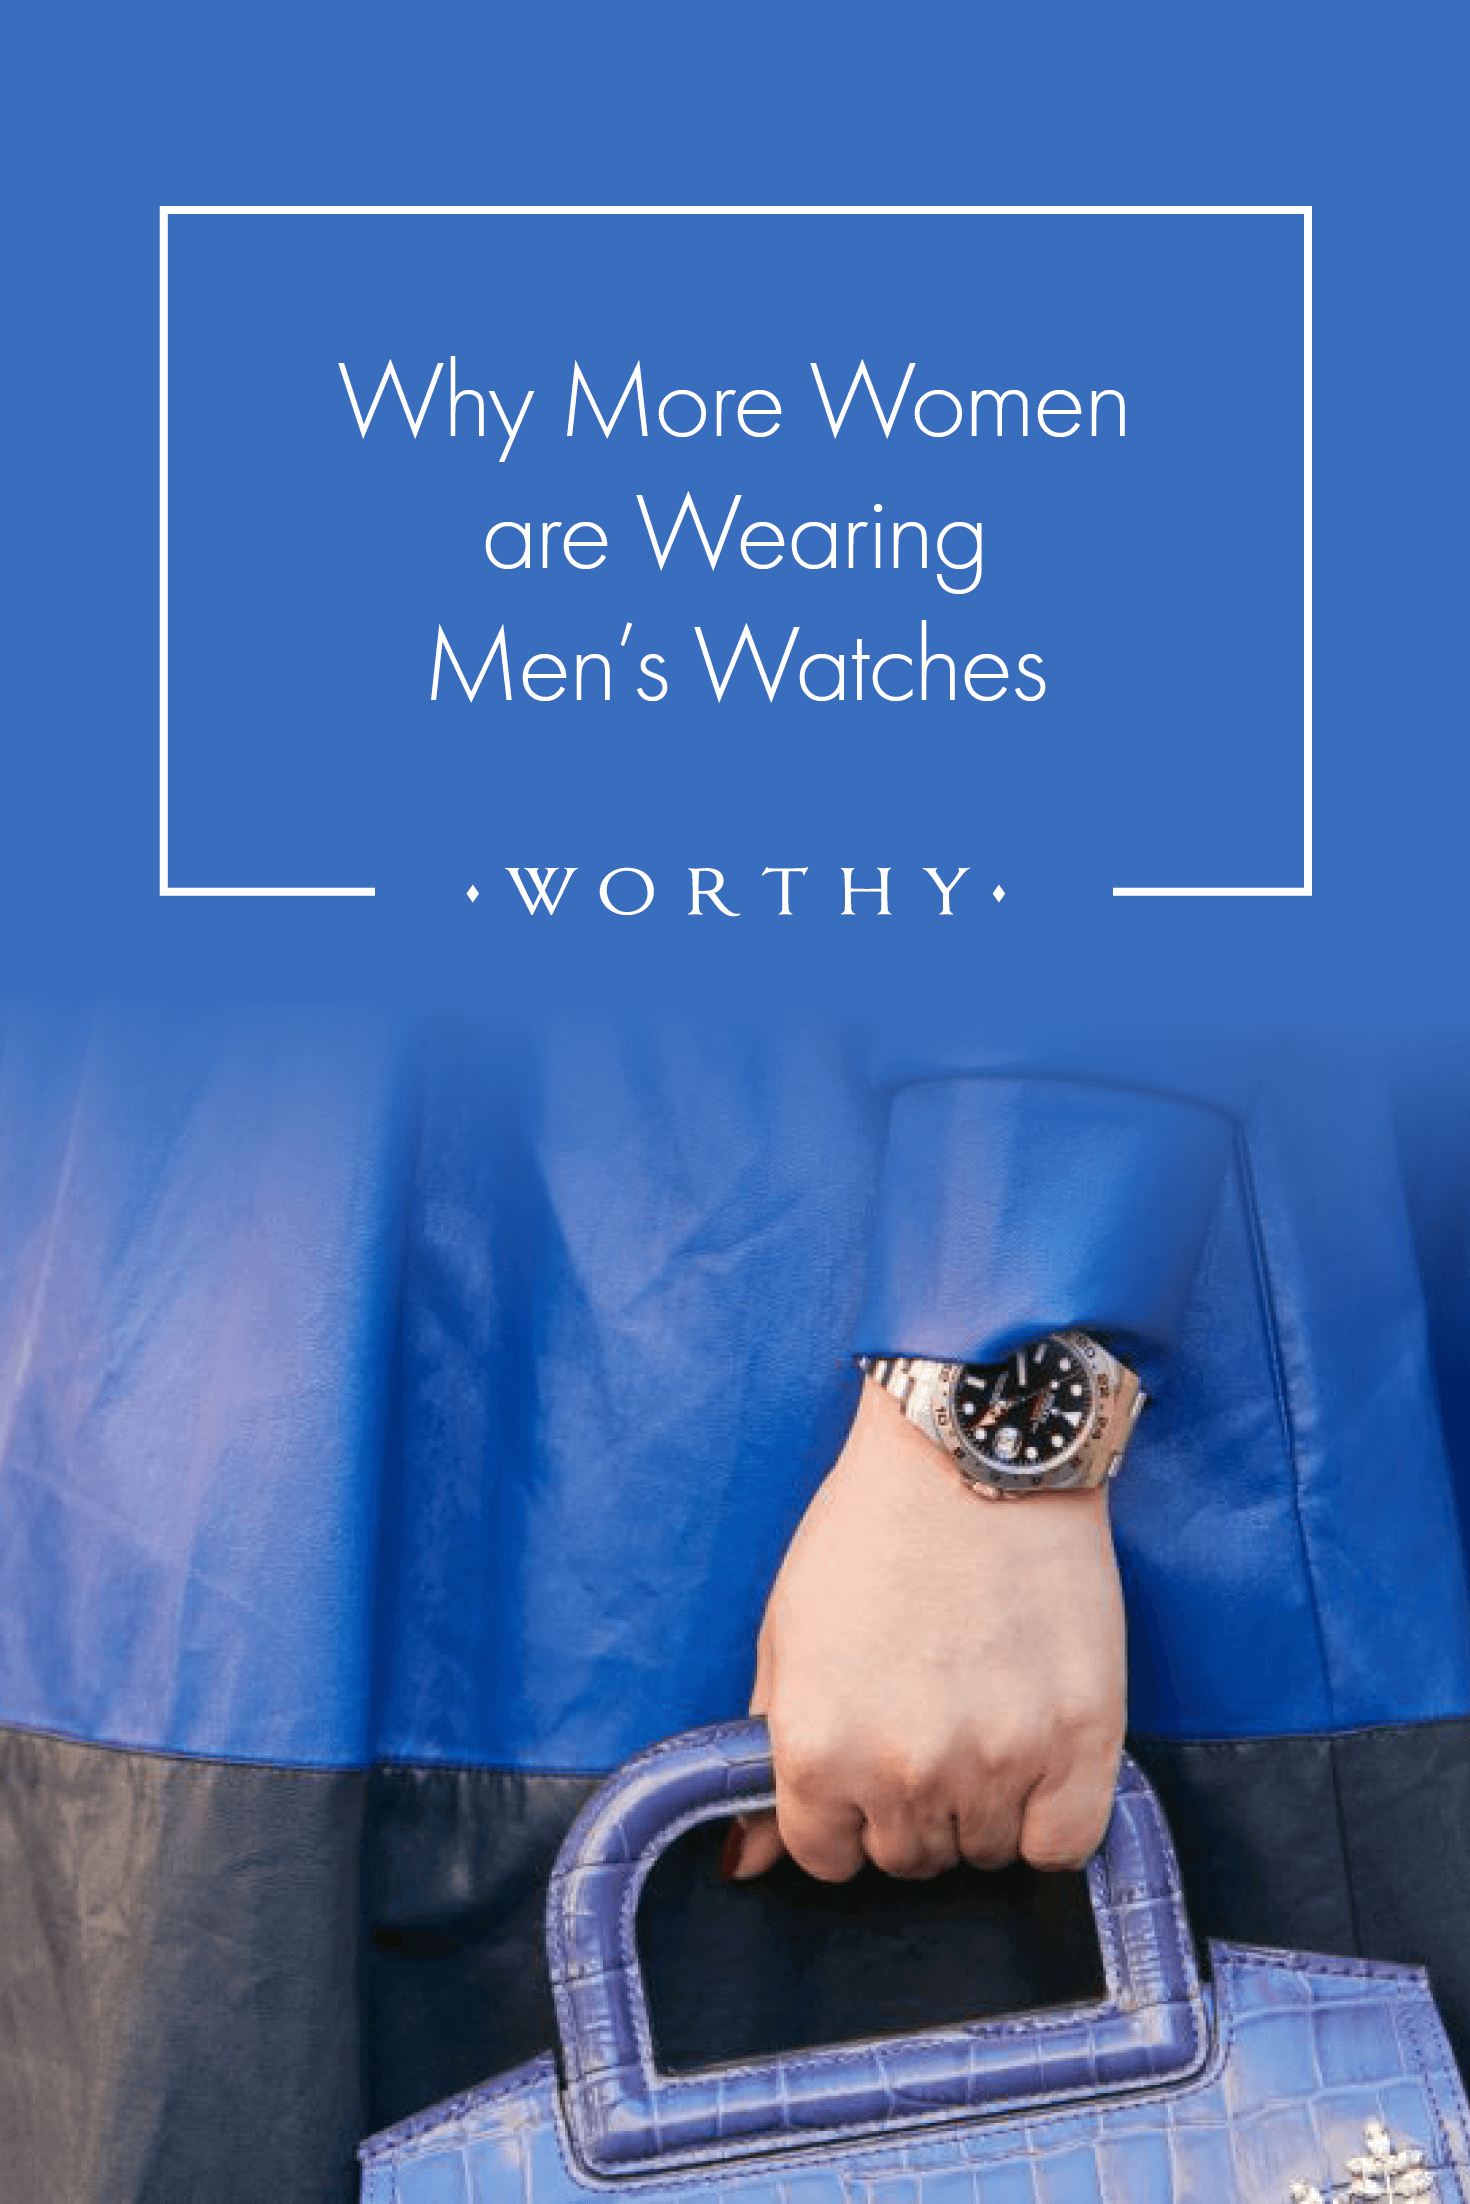 More and more women are choosing men's watches both for practicality and style. Find out more about this trend and how you can update your watch look.